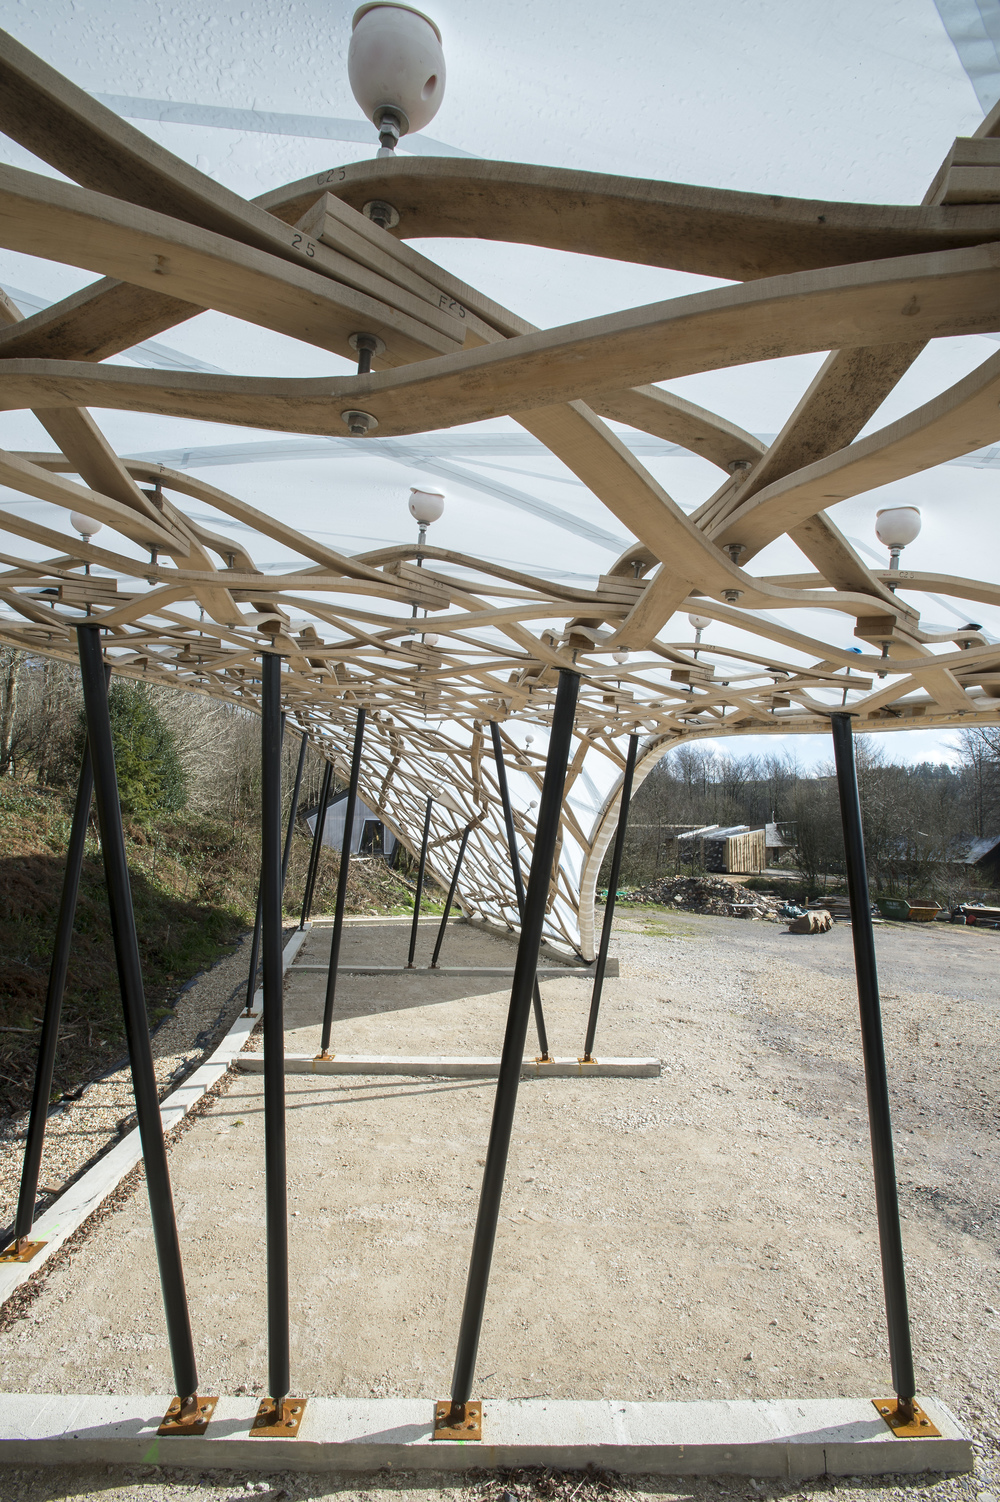 Hooke_Park_Design_&_Make_Timber_Seasoning_Shelter_©Valerie_Bennett_2014_02_22_0126.jpg